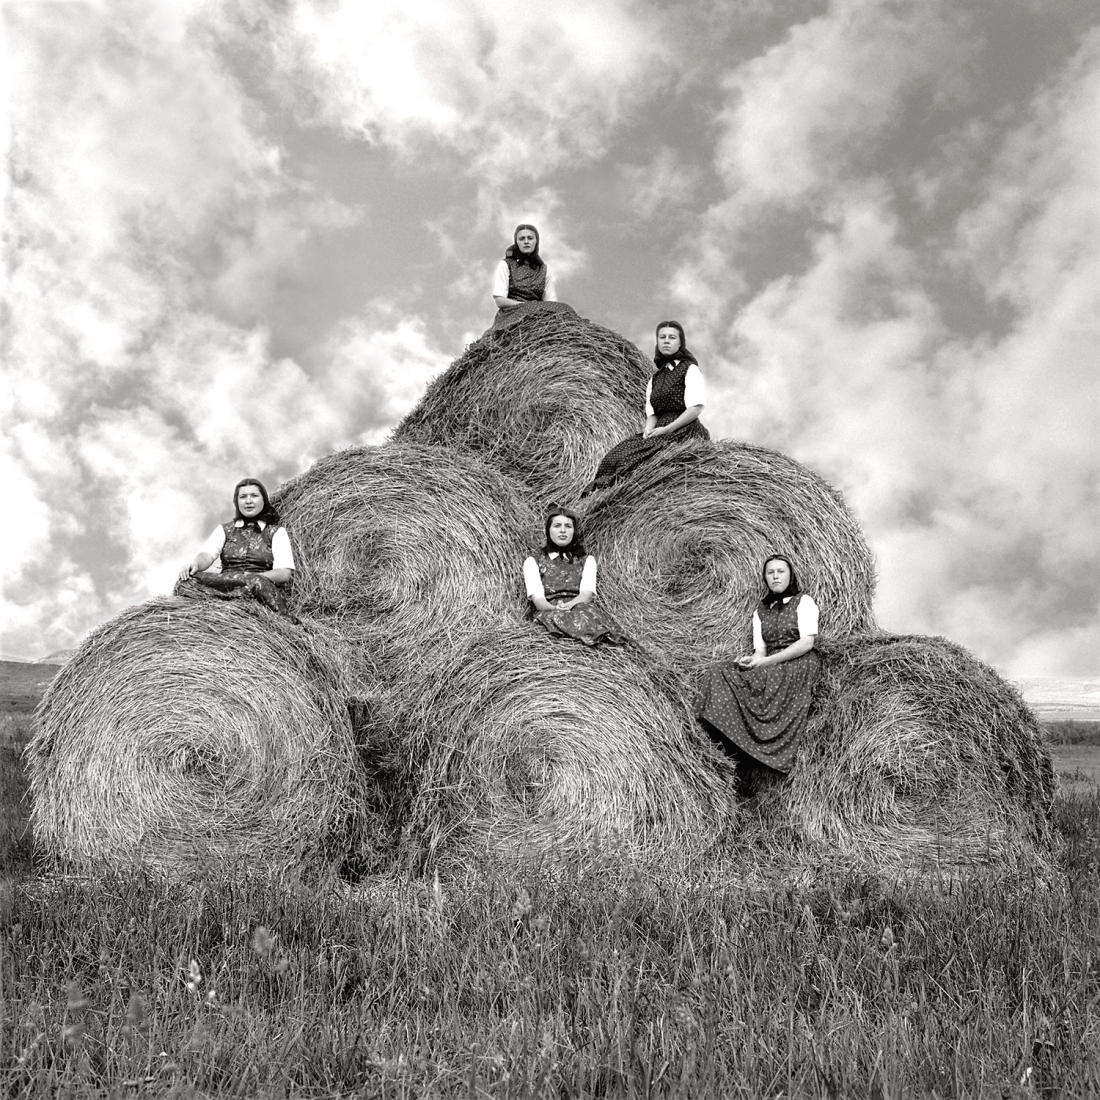 Laura Wilson, Hutterite girls during hay making season, Surprise Creek Colony Stanford, Montana, August 22, 1991